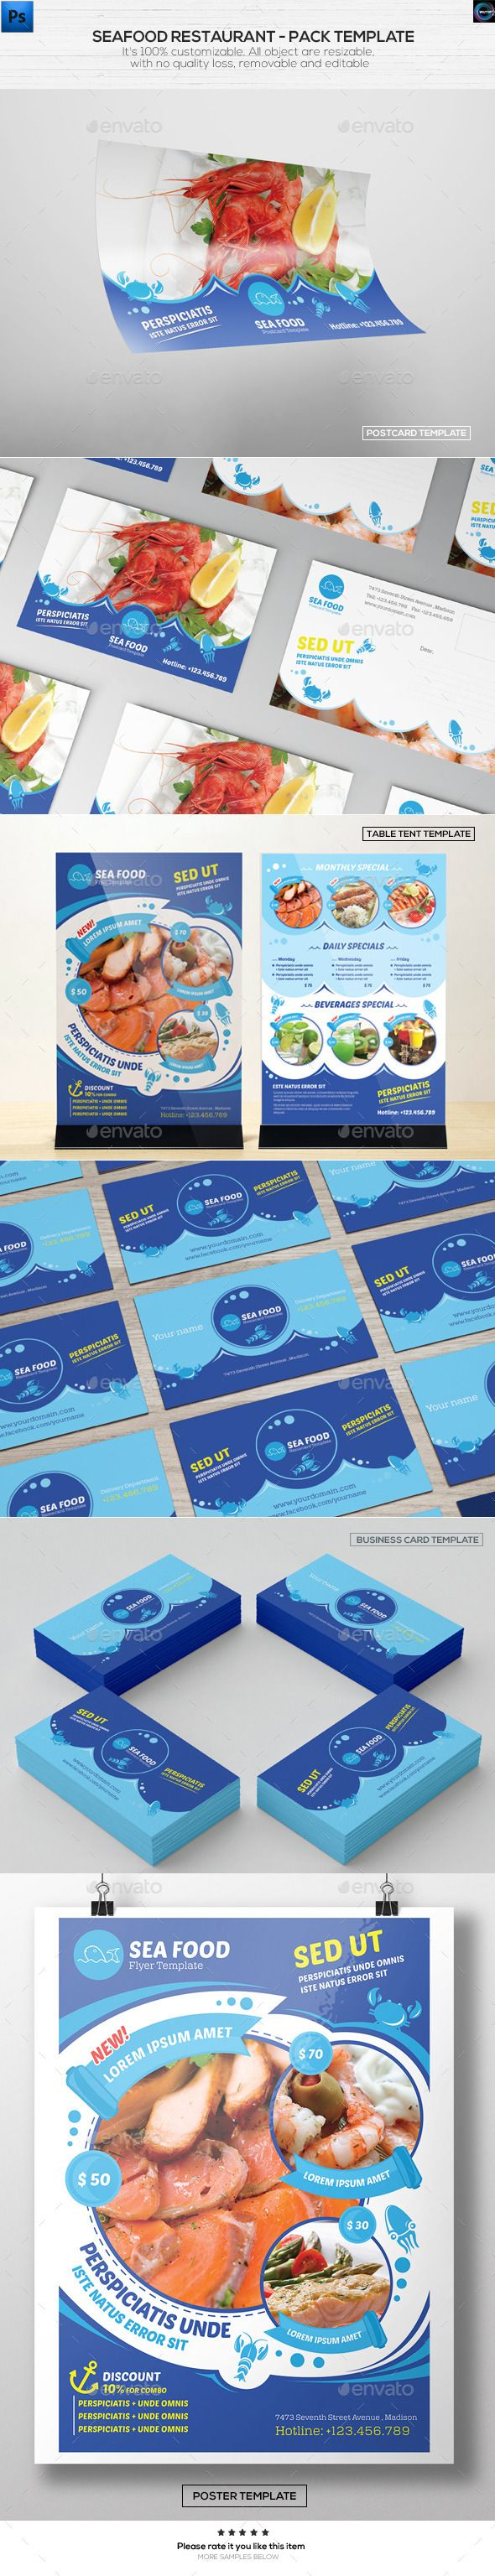 best ideas about restaurant vouchers coupon seafood restaurant pack template